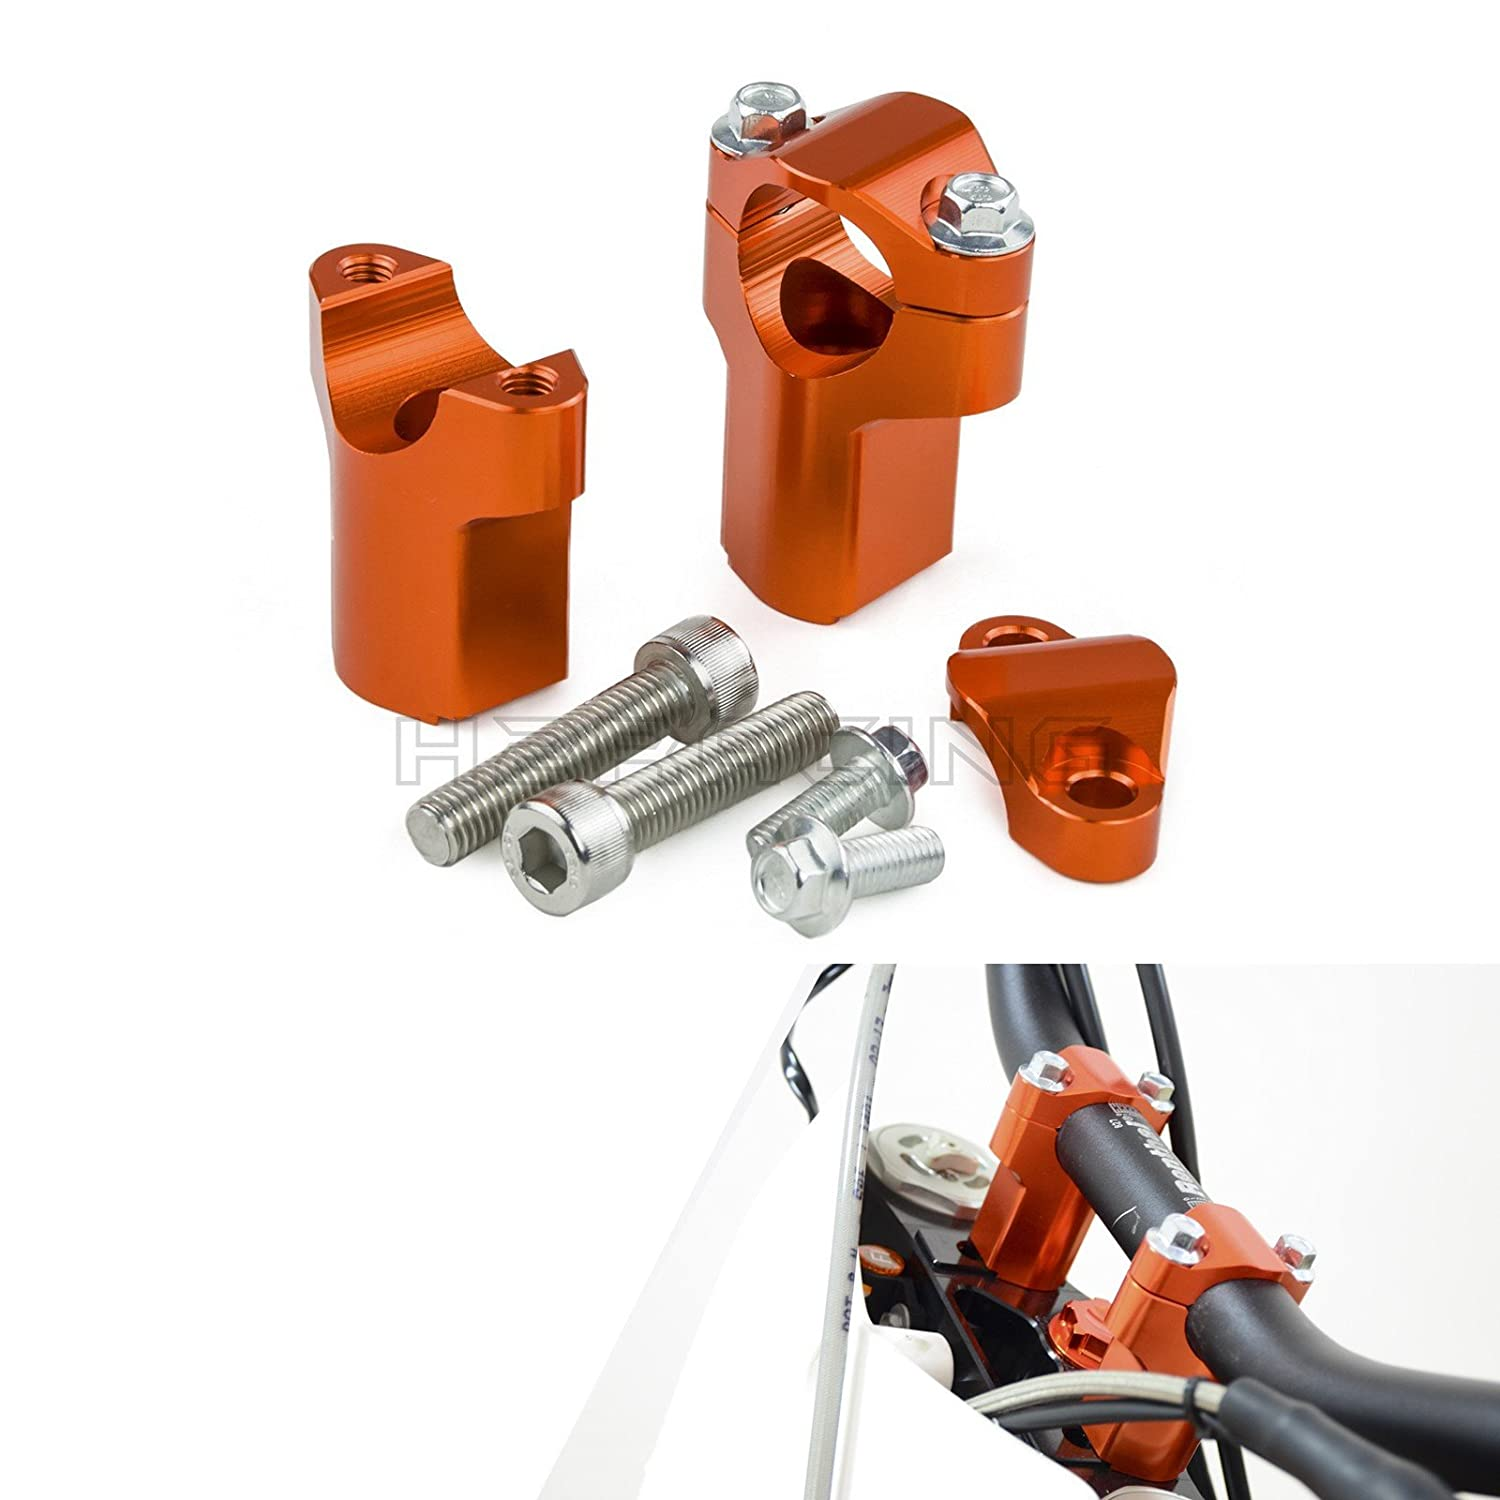 H2racing 28mm Orange Handlebar Mounts Riser Clamp For 300 500 Exc Ktm 525 Fuse Box 350 F Six Days 12 16125 530cc Sx Xc 06 161190 Adventure R Abs 13 15 1050 1250